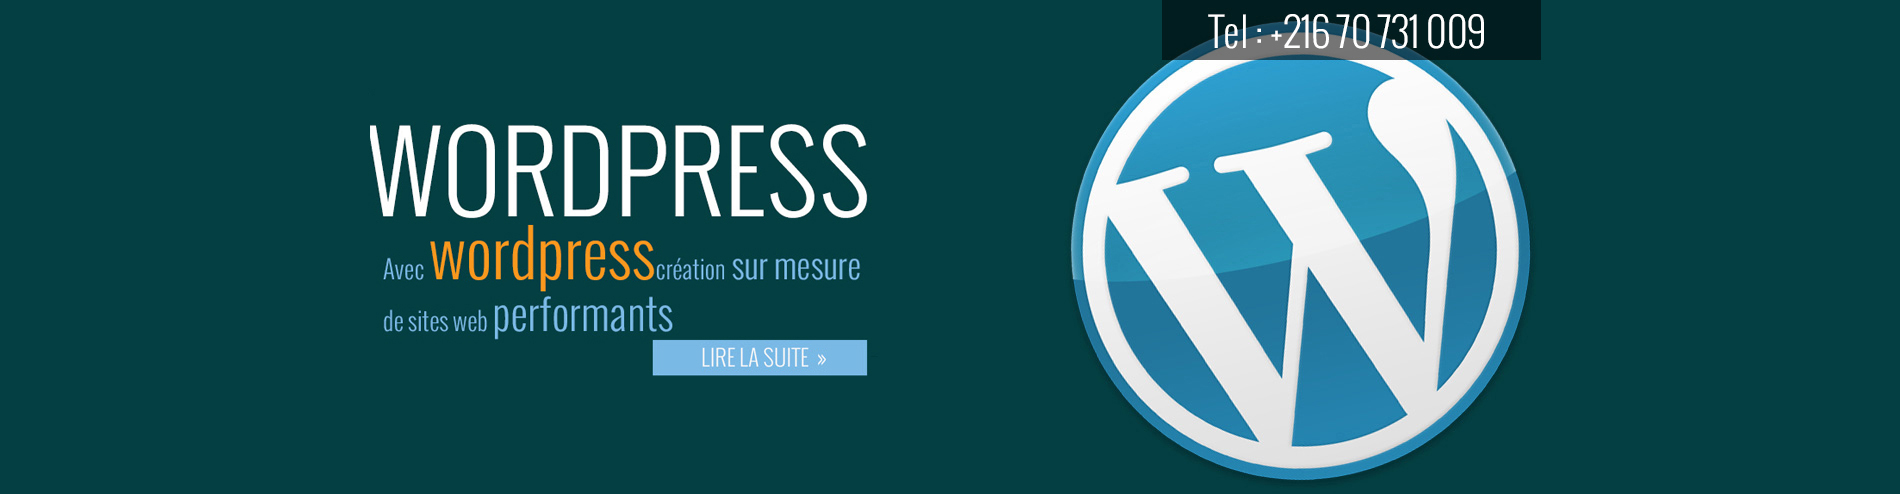 joomla wordpress tunisie